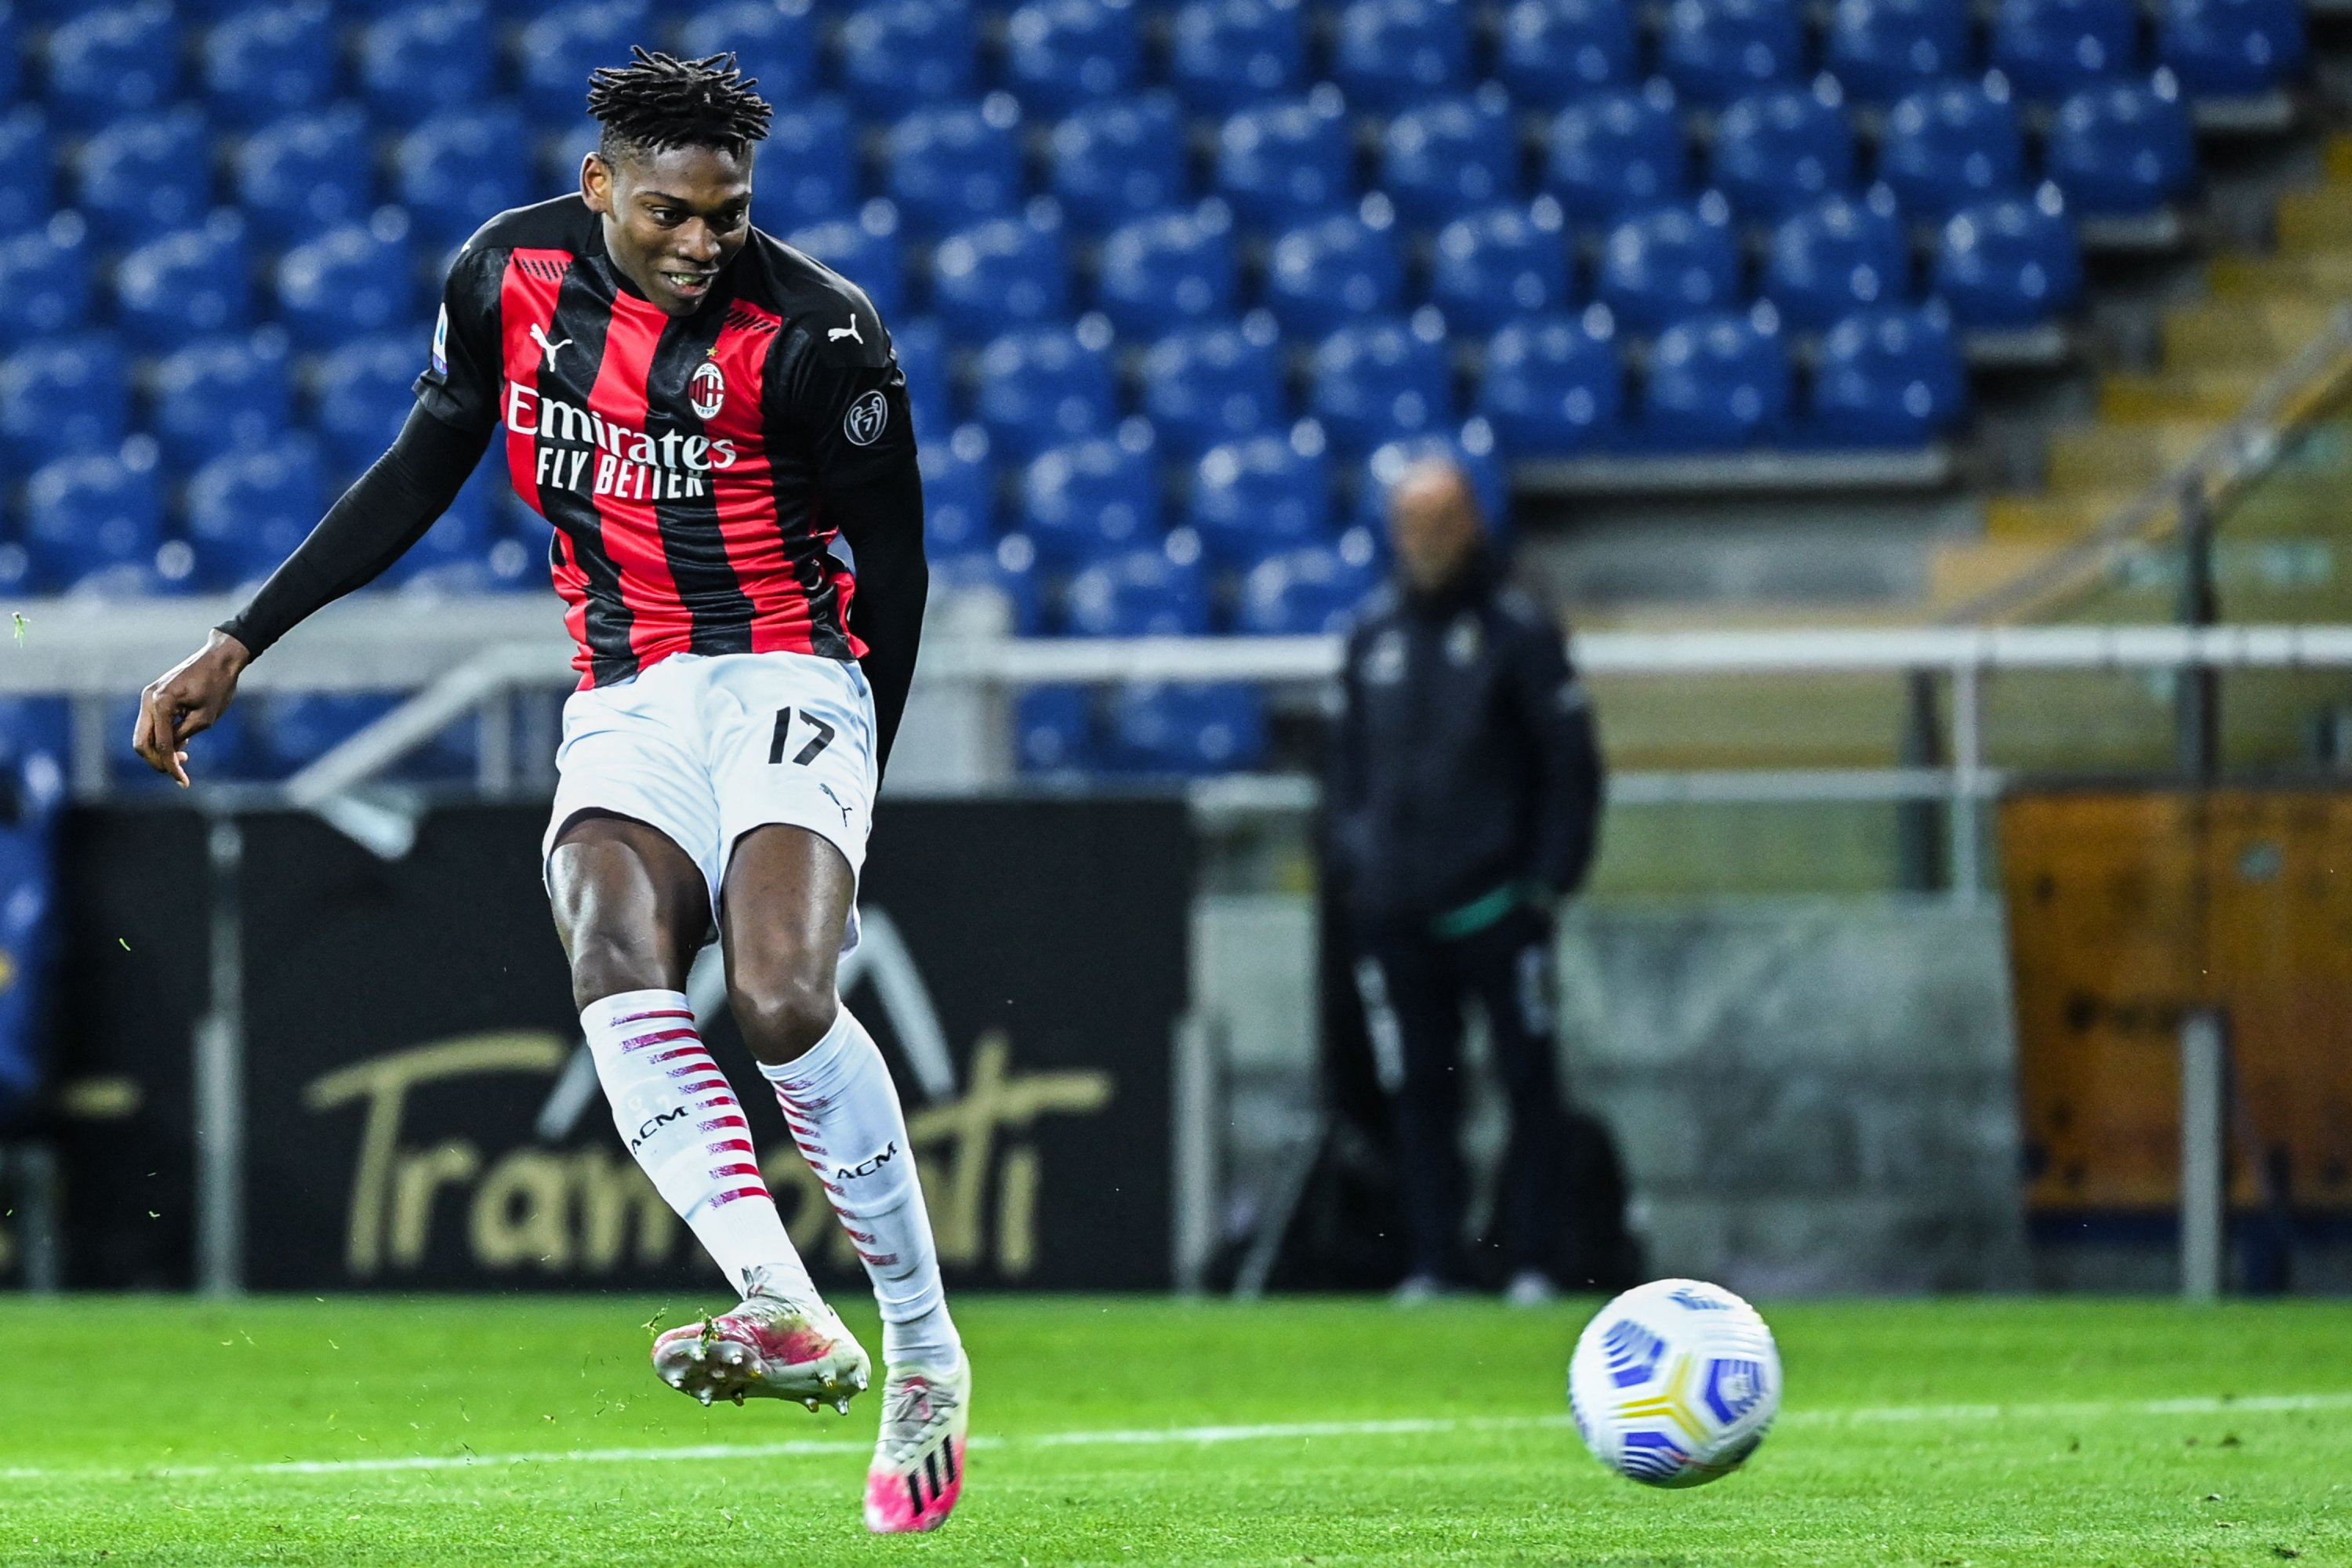 AC Milan's Portuguese forward Rafael Leao shoots to score the third goal during a Serie A match against Parma at the Ennio-Tardini stadium, Parma, Italy, April 10, 2021. (AFP Photo)